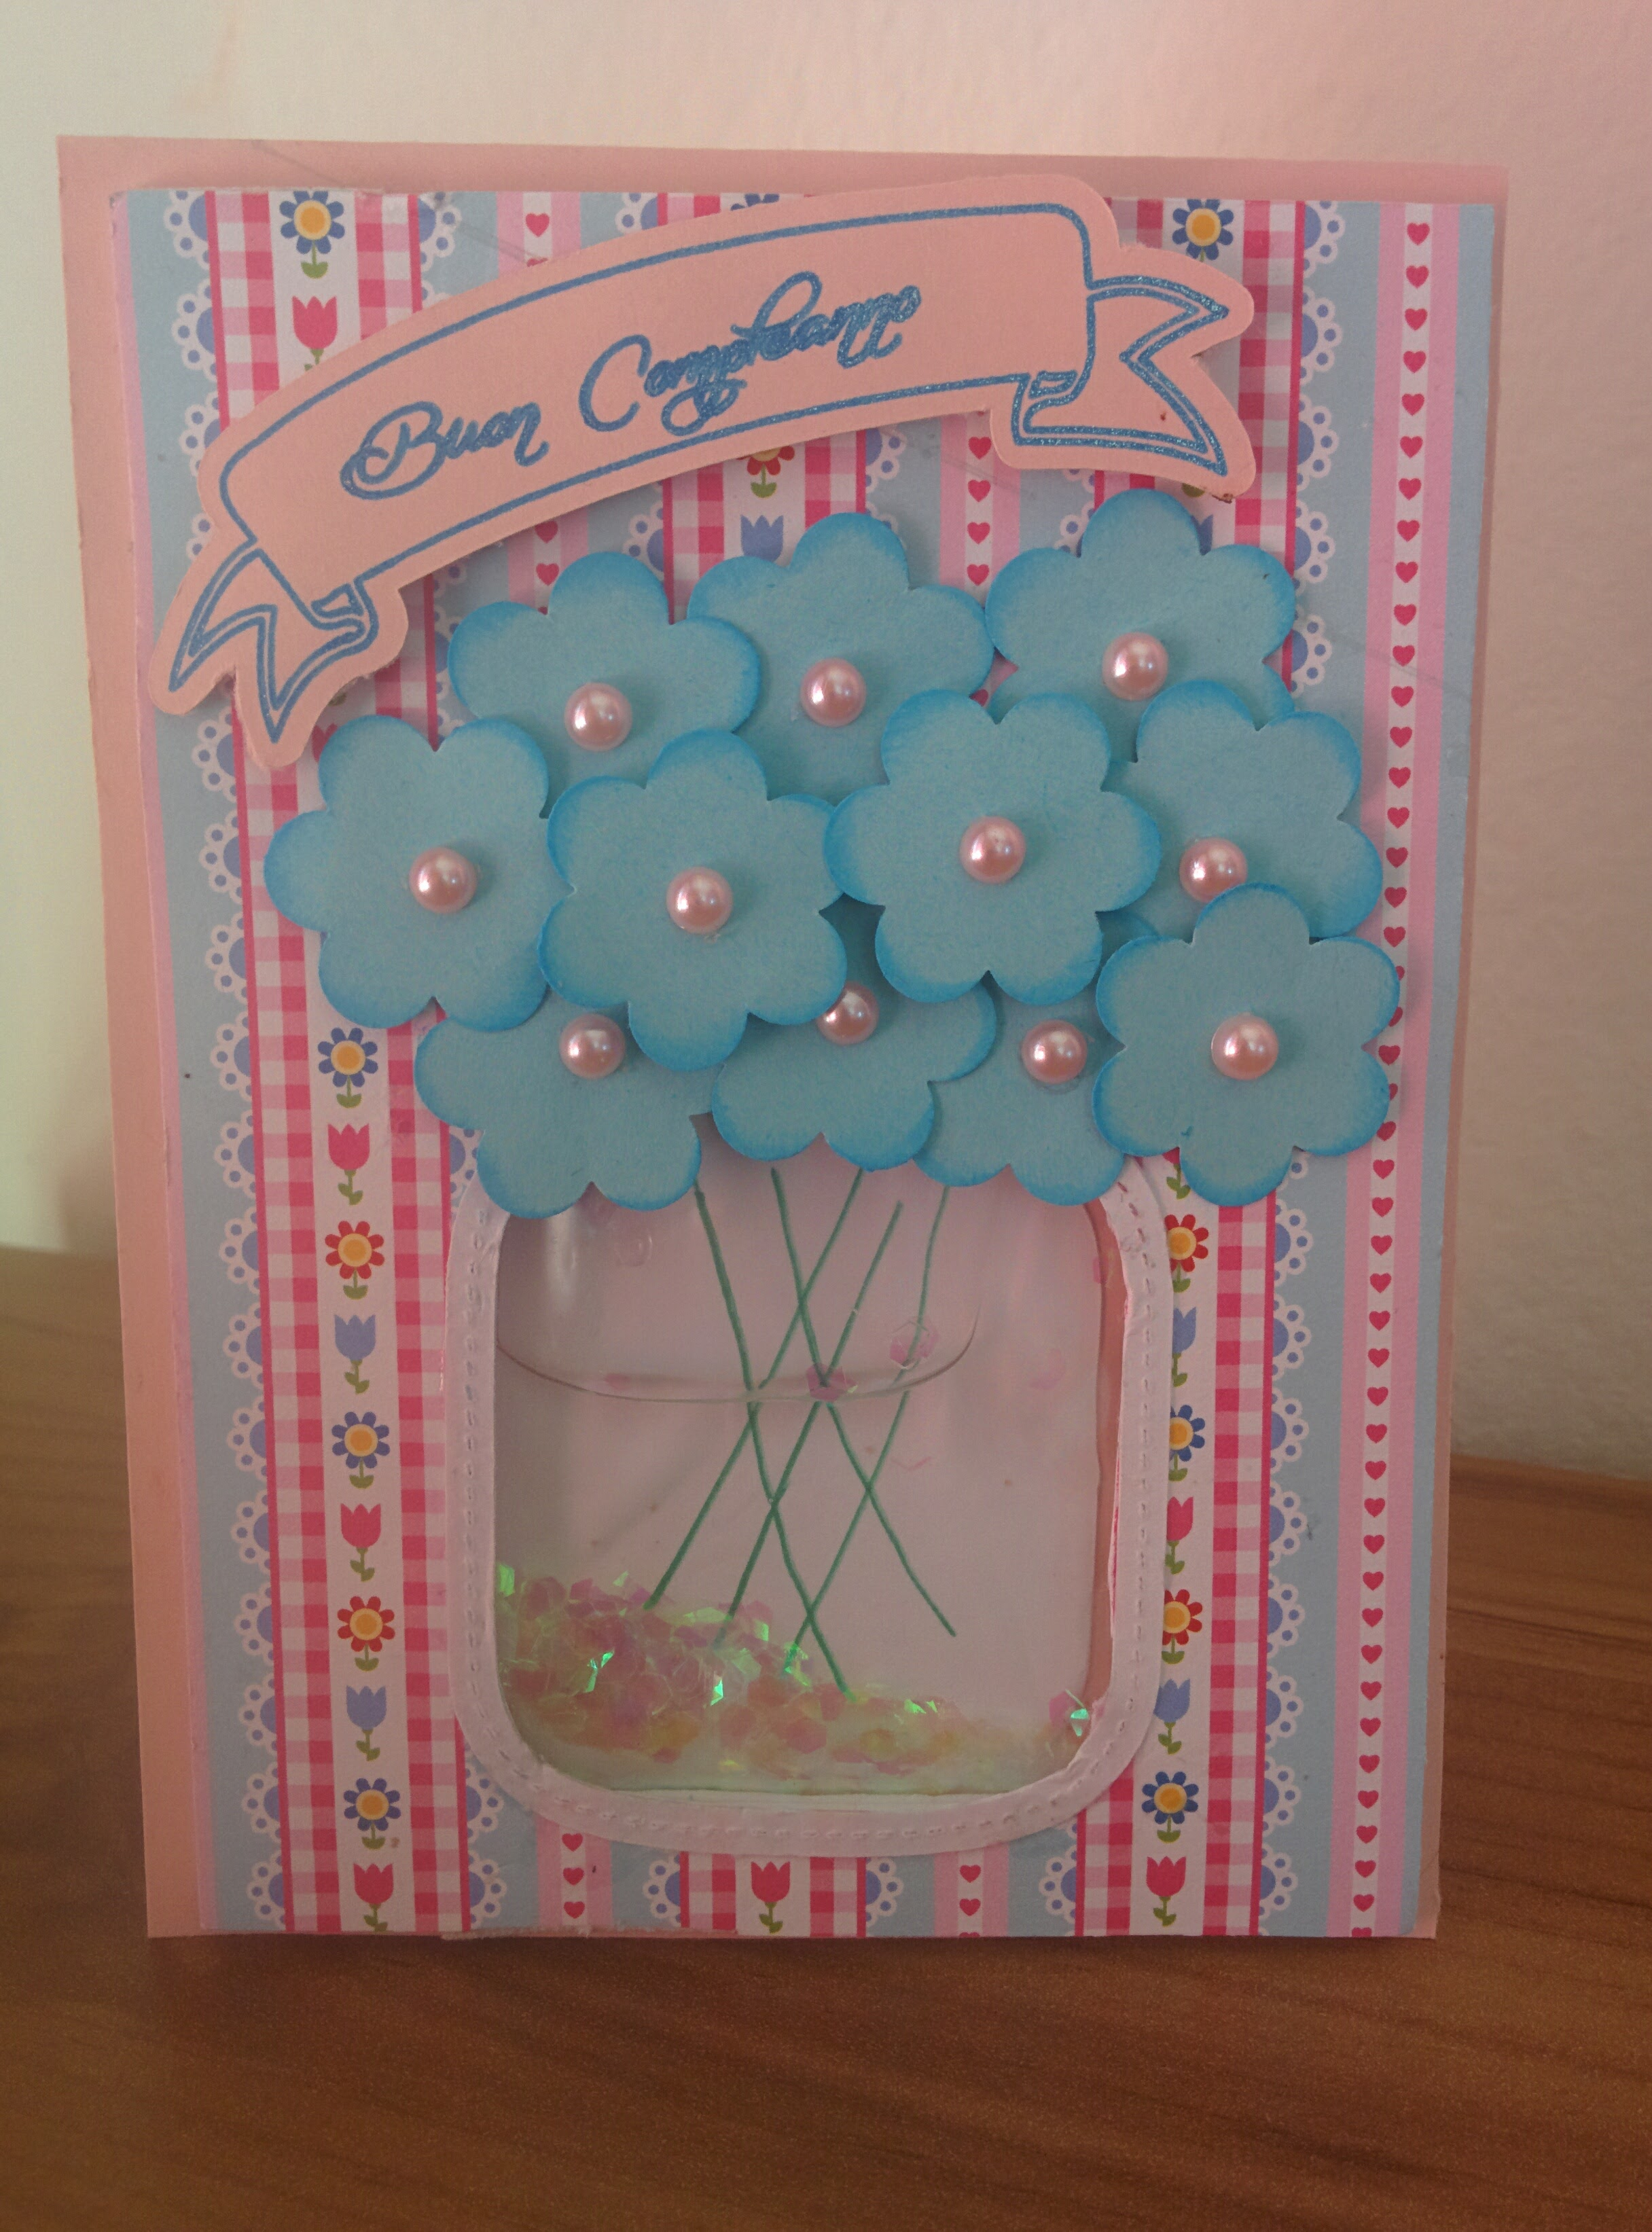 Fiori in mason jar: liquid shaker card